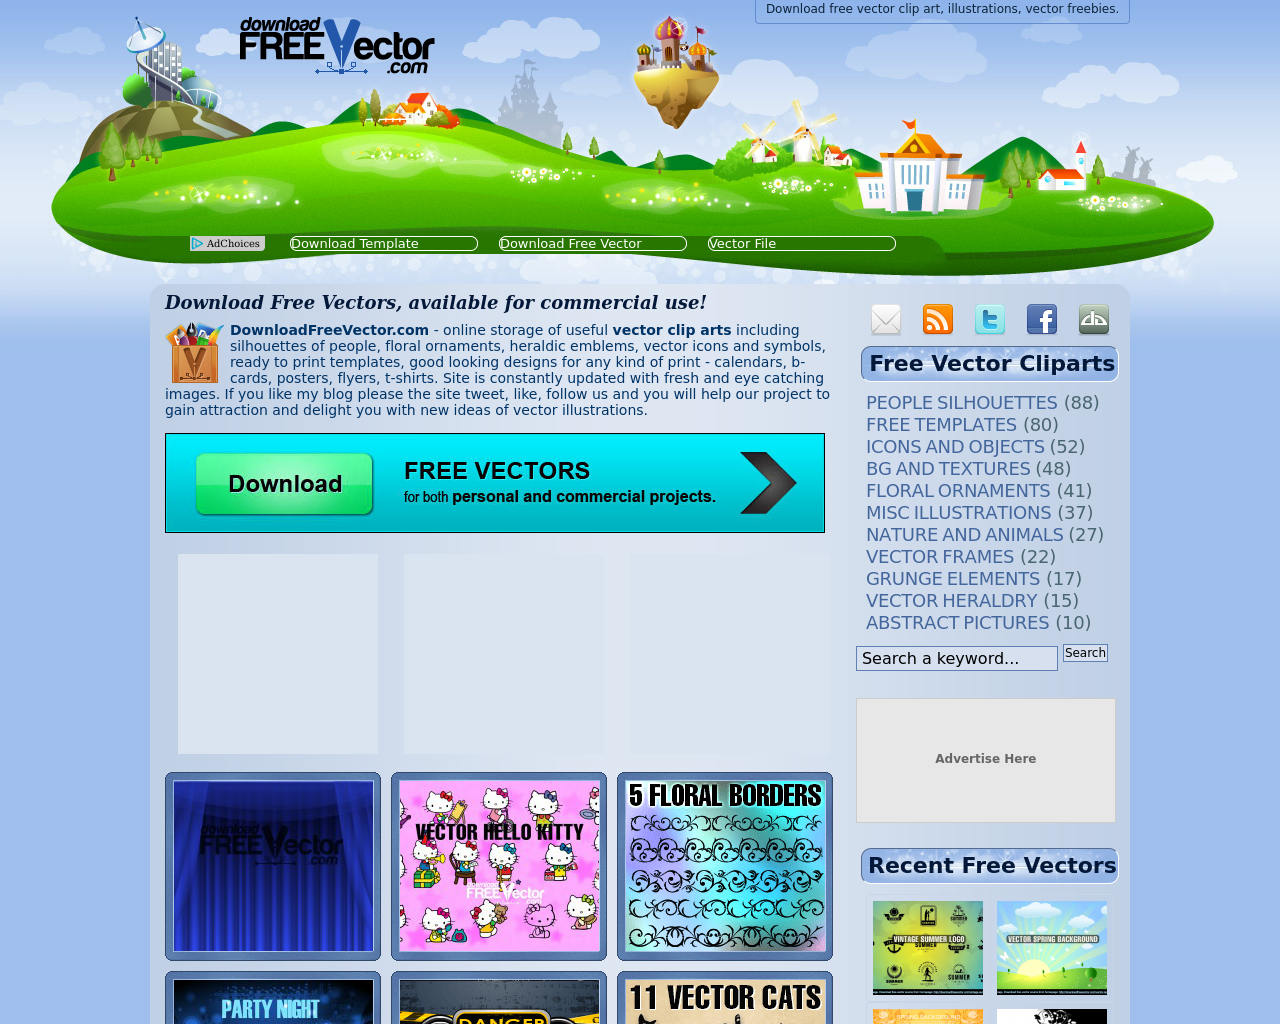 DownloadFREEVector.com-Advertising-Reviews-Pricing